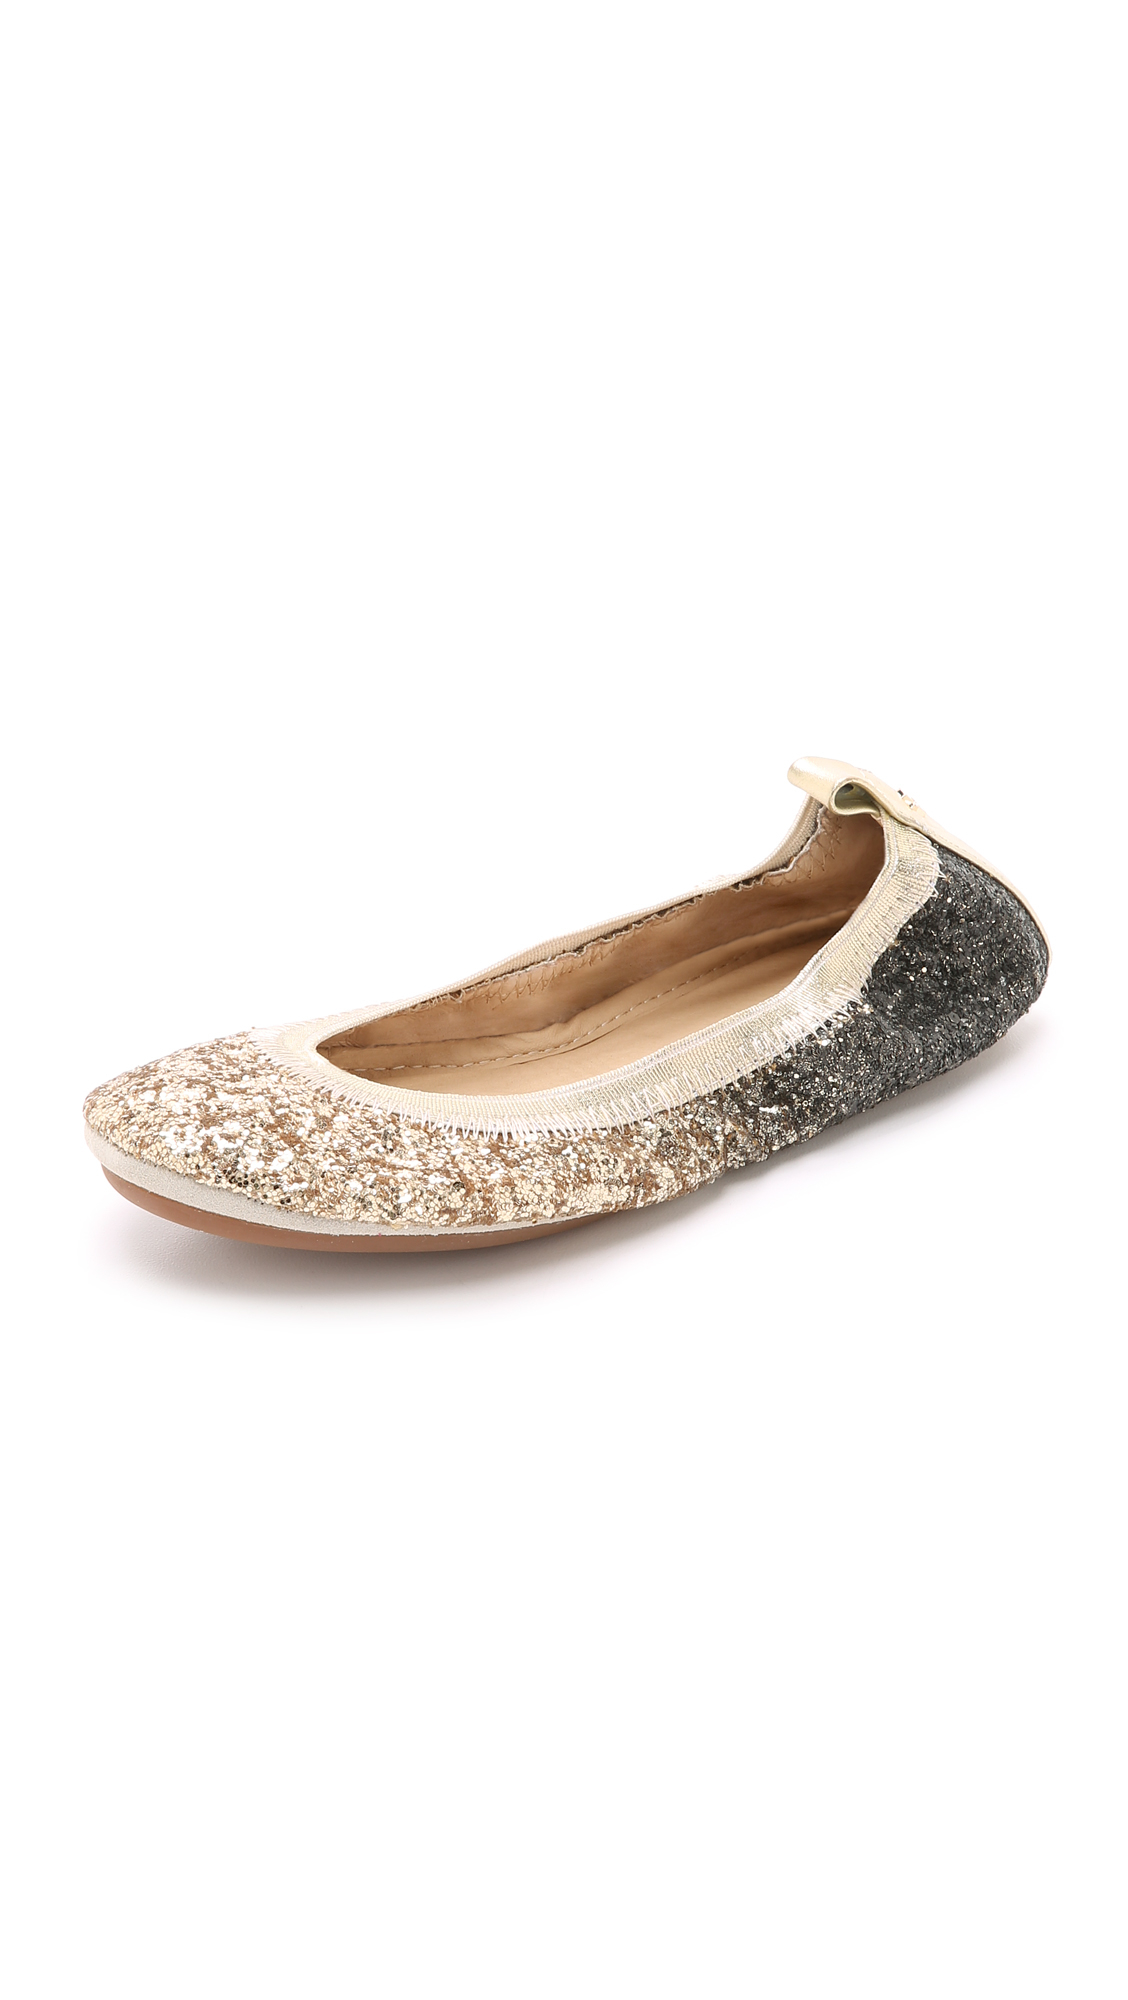 Silver Ballet Flats Sale: Save Up to 50% Off! Shop downiloadojg.gq's huge selection of Silver Ballet Flats - Over 50 styles available. FREE Shipping & Exchanges, and a % price guarantee!